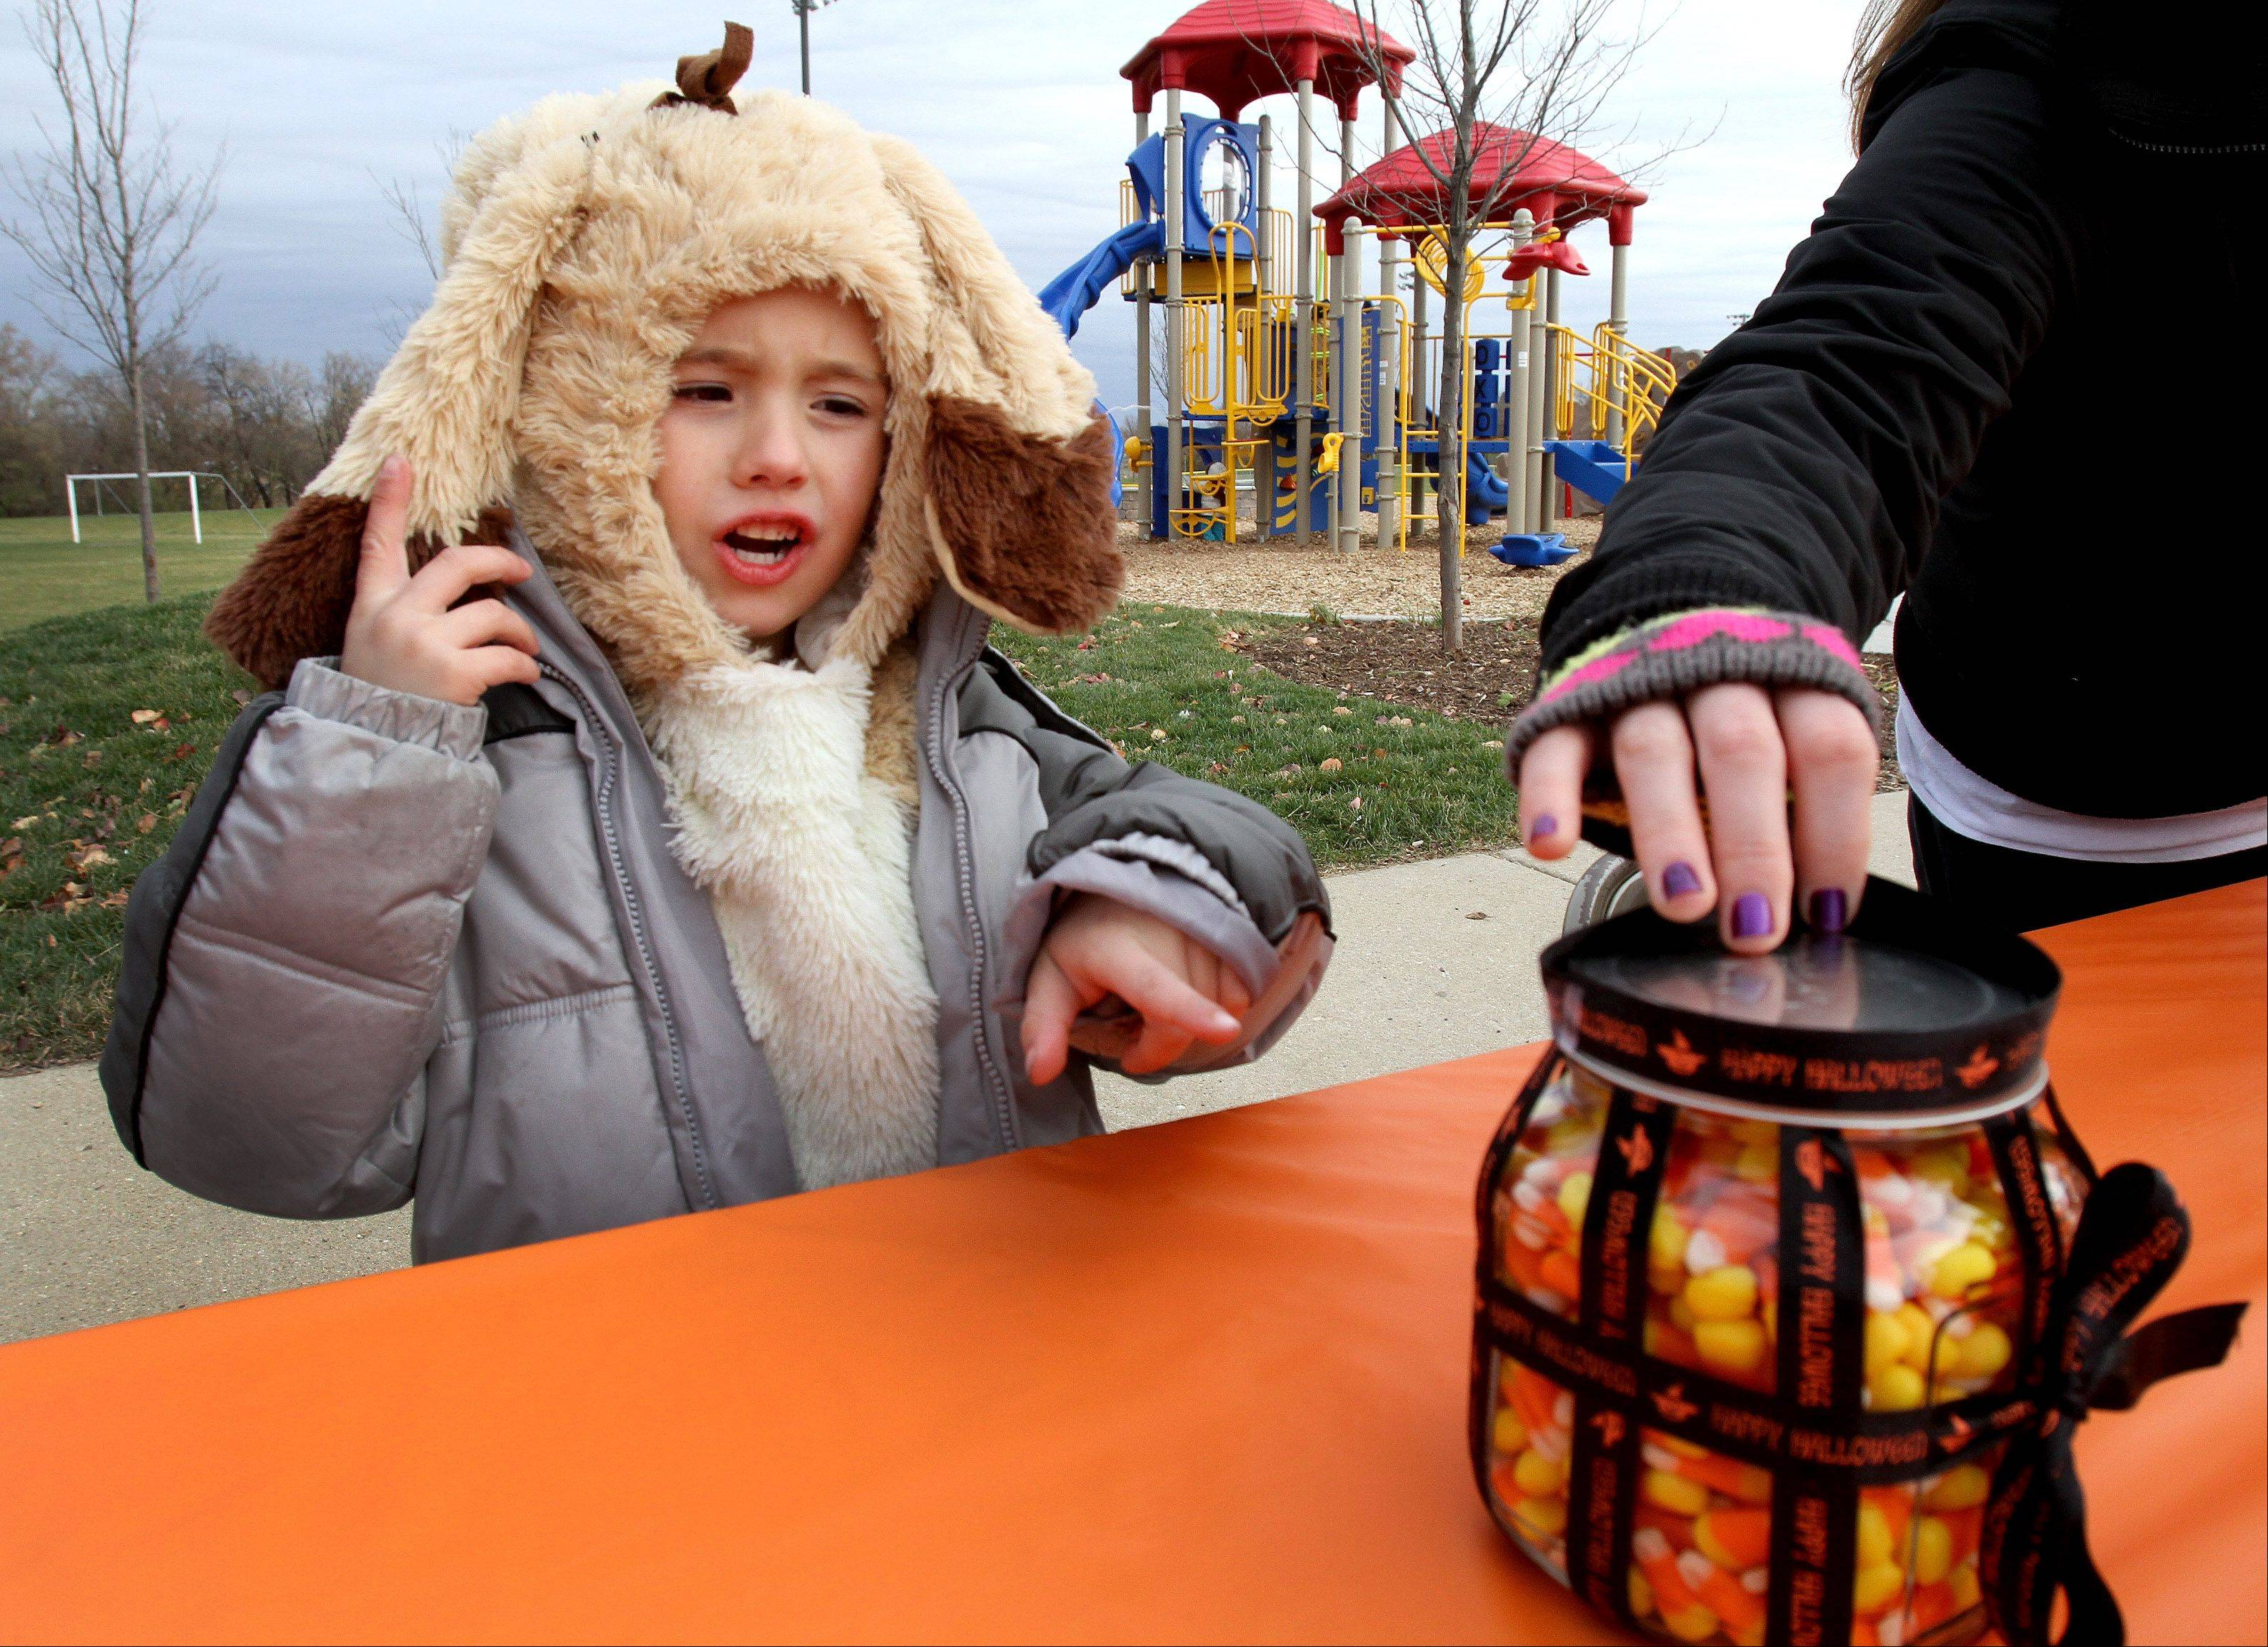 Jaden Holtz, 5, of Hanover Park, takes a guess on how many candy corns are in the jar, one of the activities offered Tuesday during the grand opening of the new playground outside the Clauss Recreation Center in Roselle.